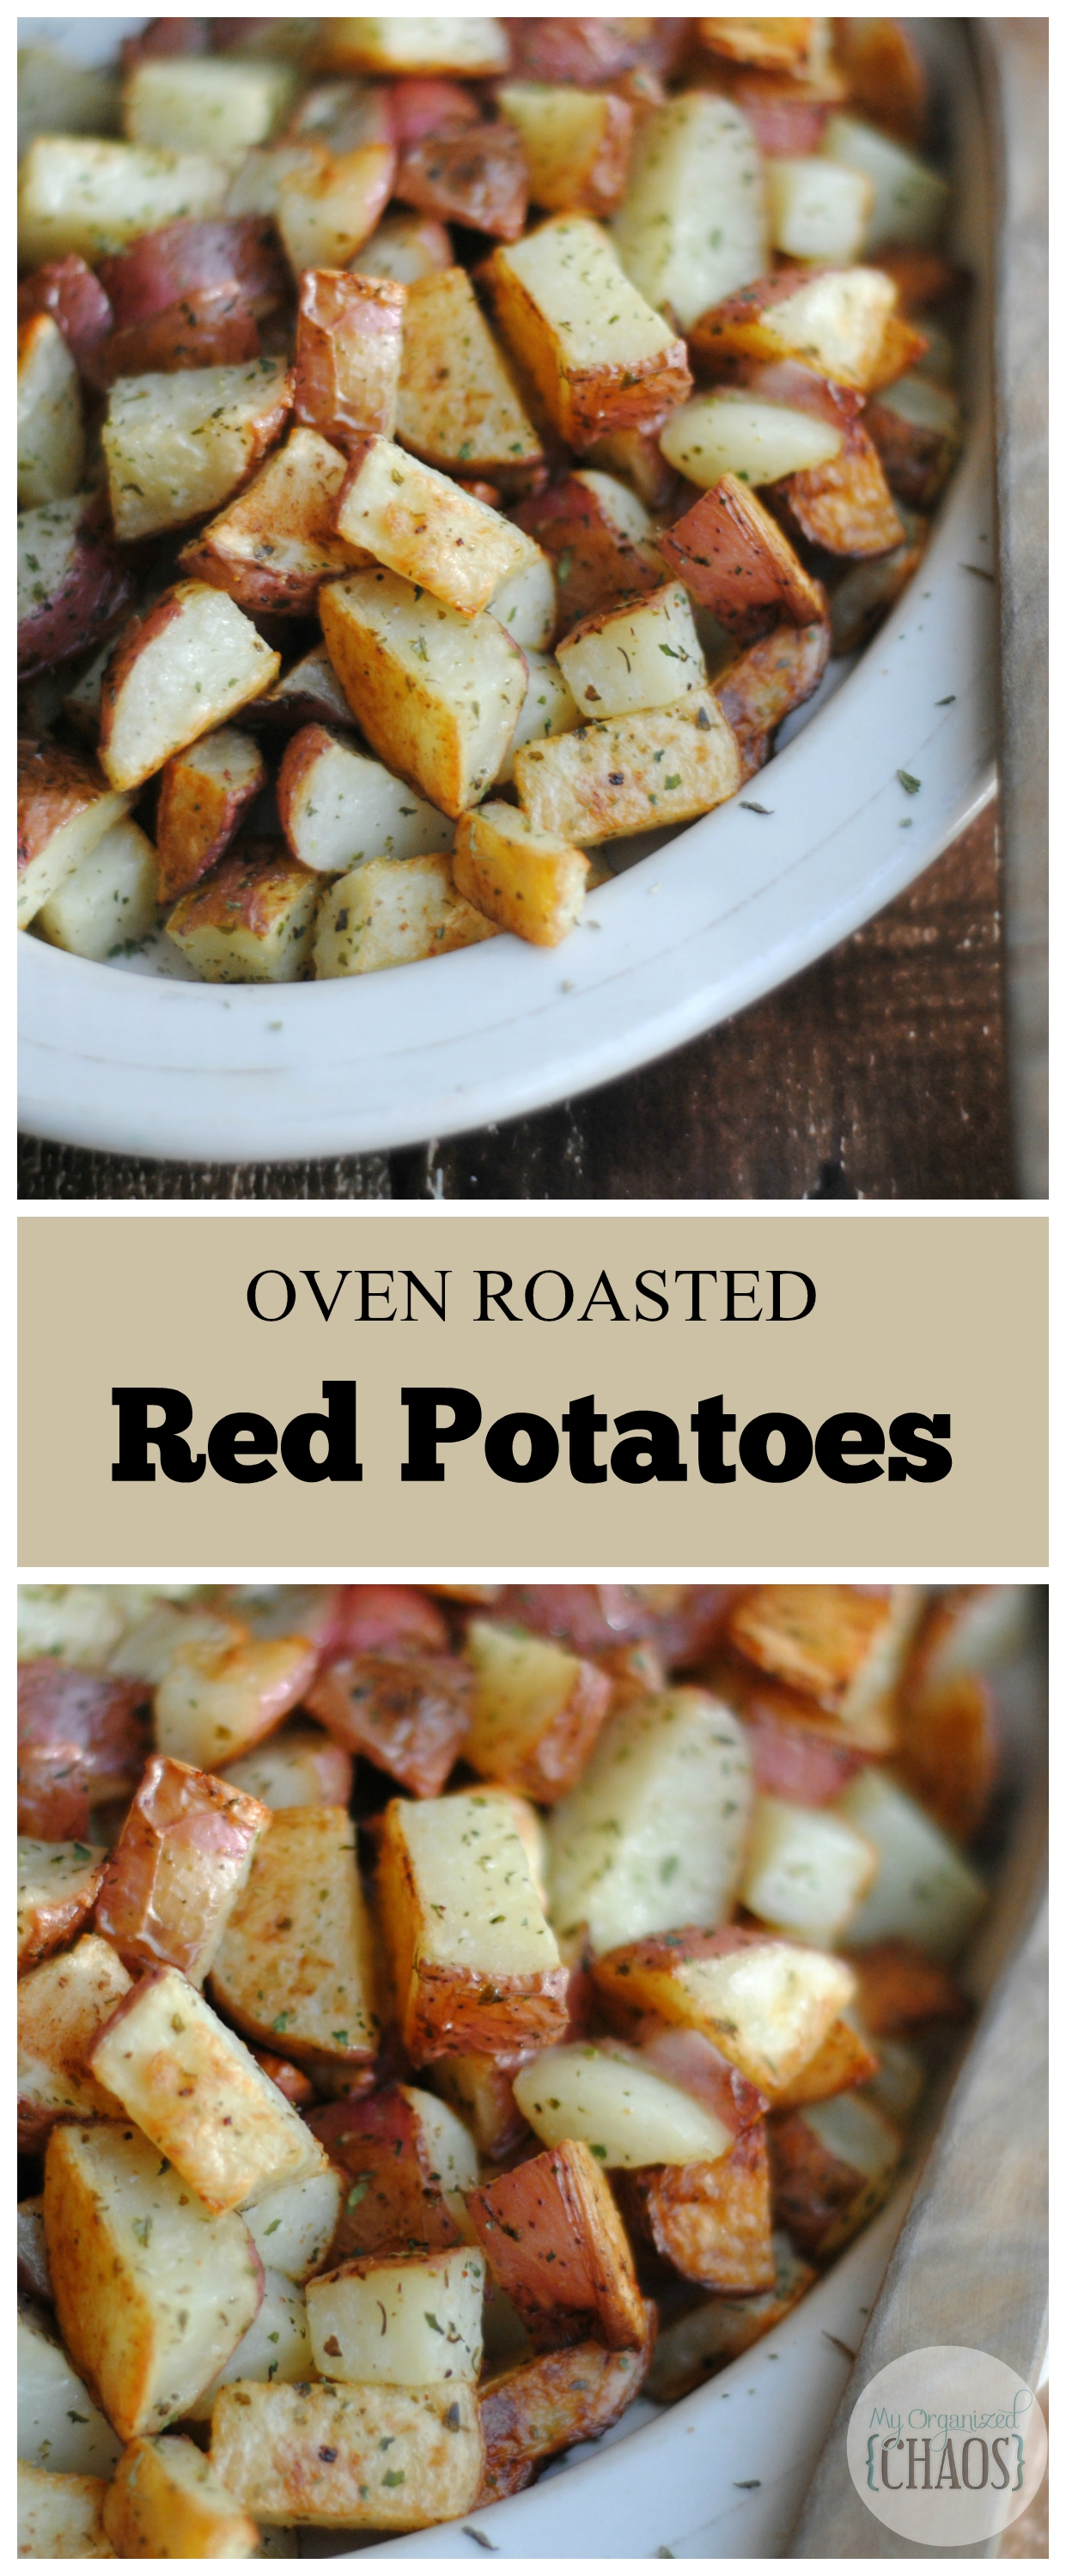 Oven Roasted Red Potatoes comfort recipe